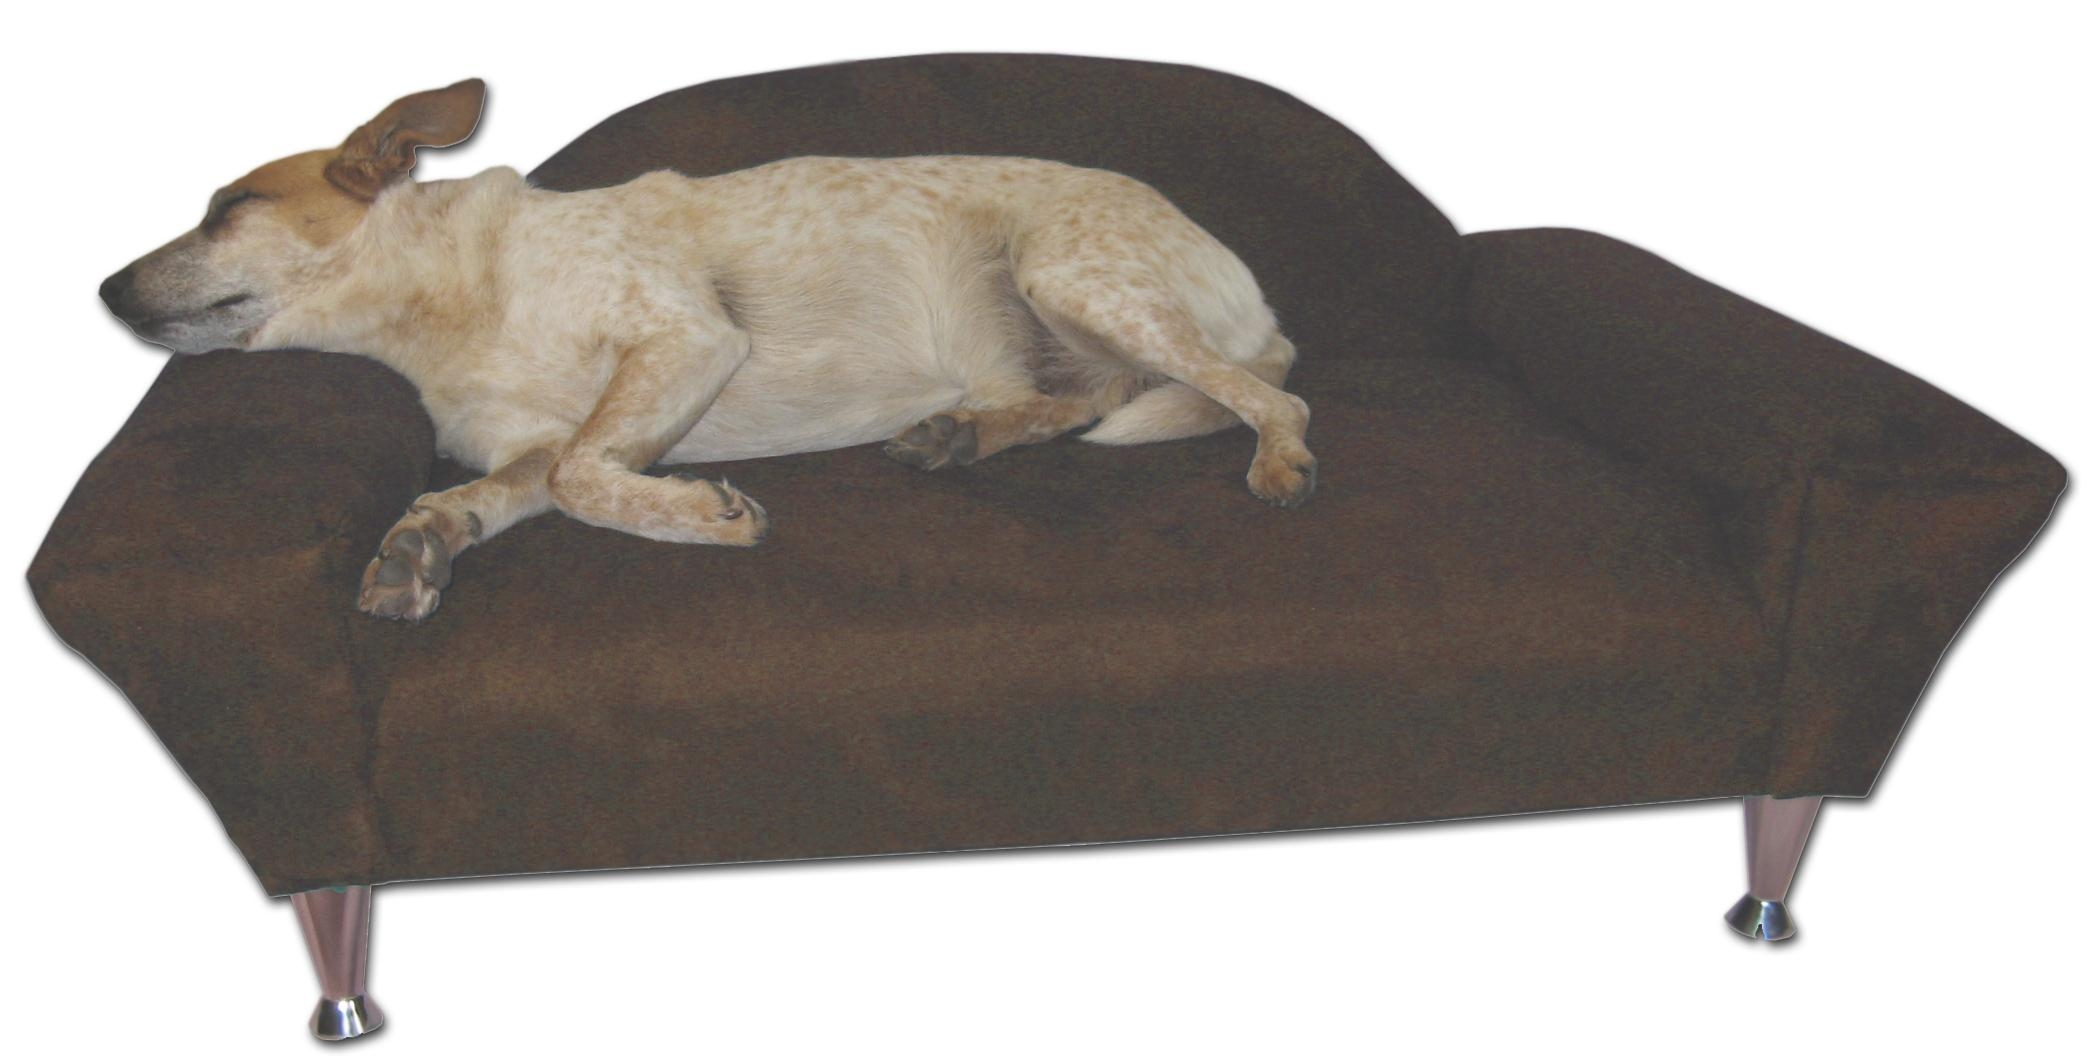 Dog Furniture – Pet Furniture – Dog Sofa – Dog Couch Intended For Sofas For Dogs (Image 3 of 20)